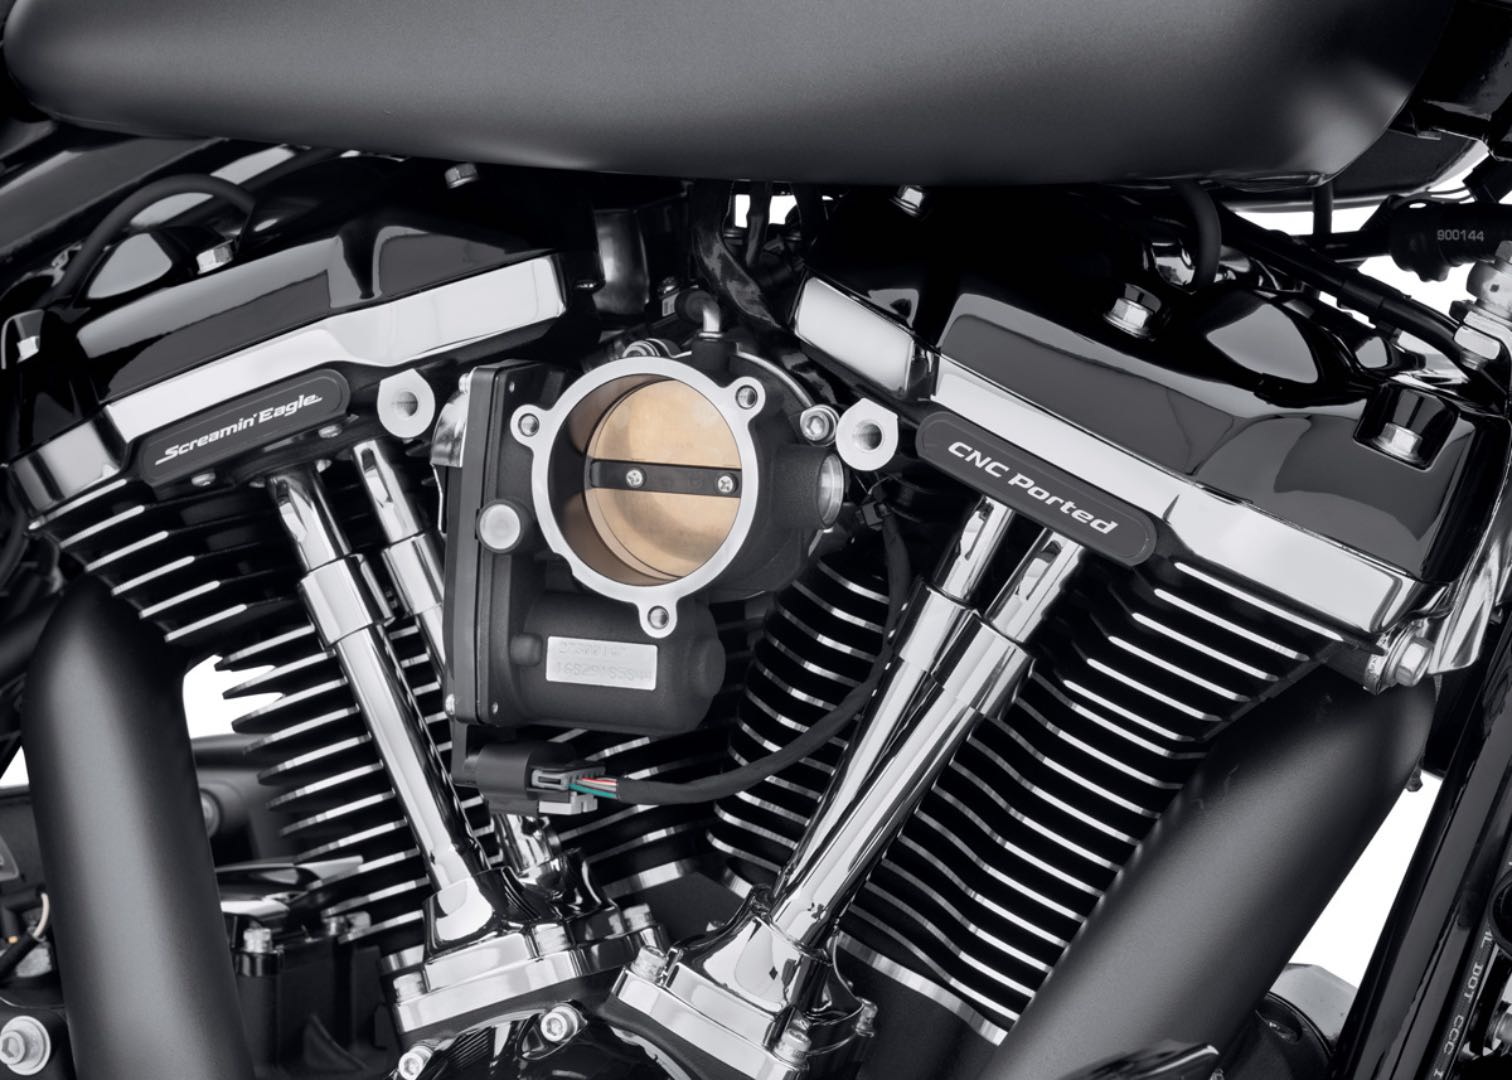 hight resolution of harley davidson milwaukee eight stave iv kit up to 52 more power